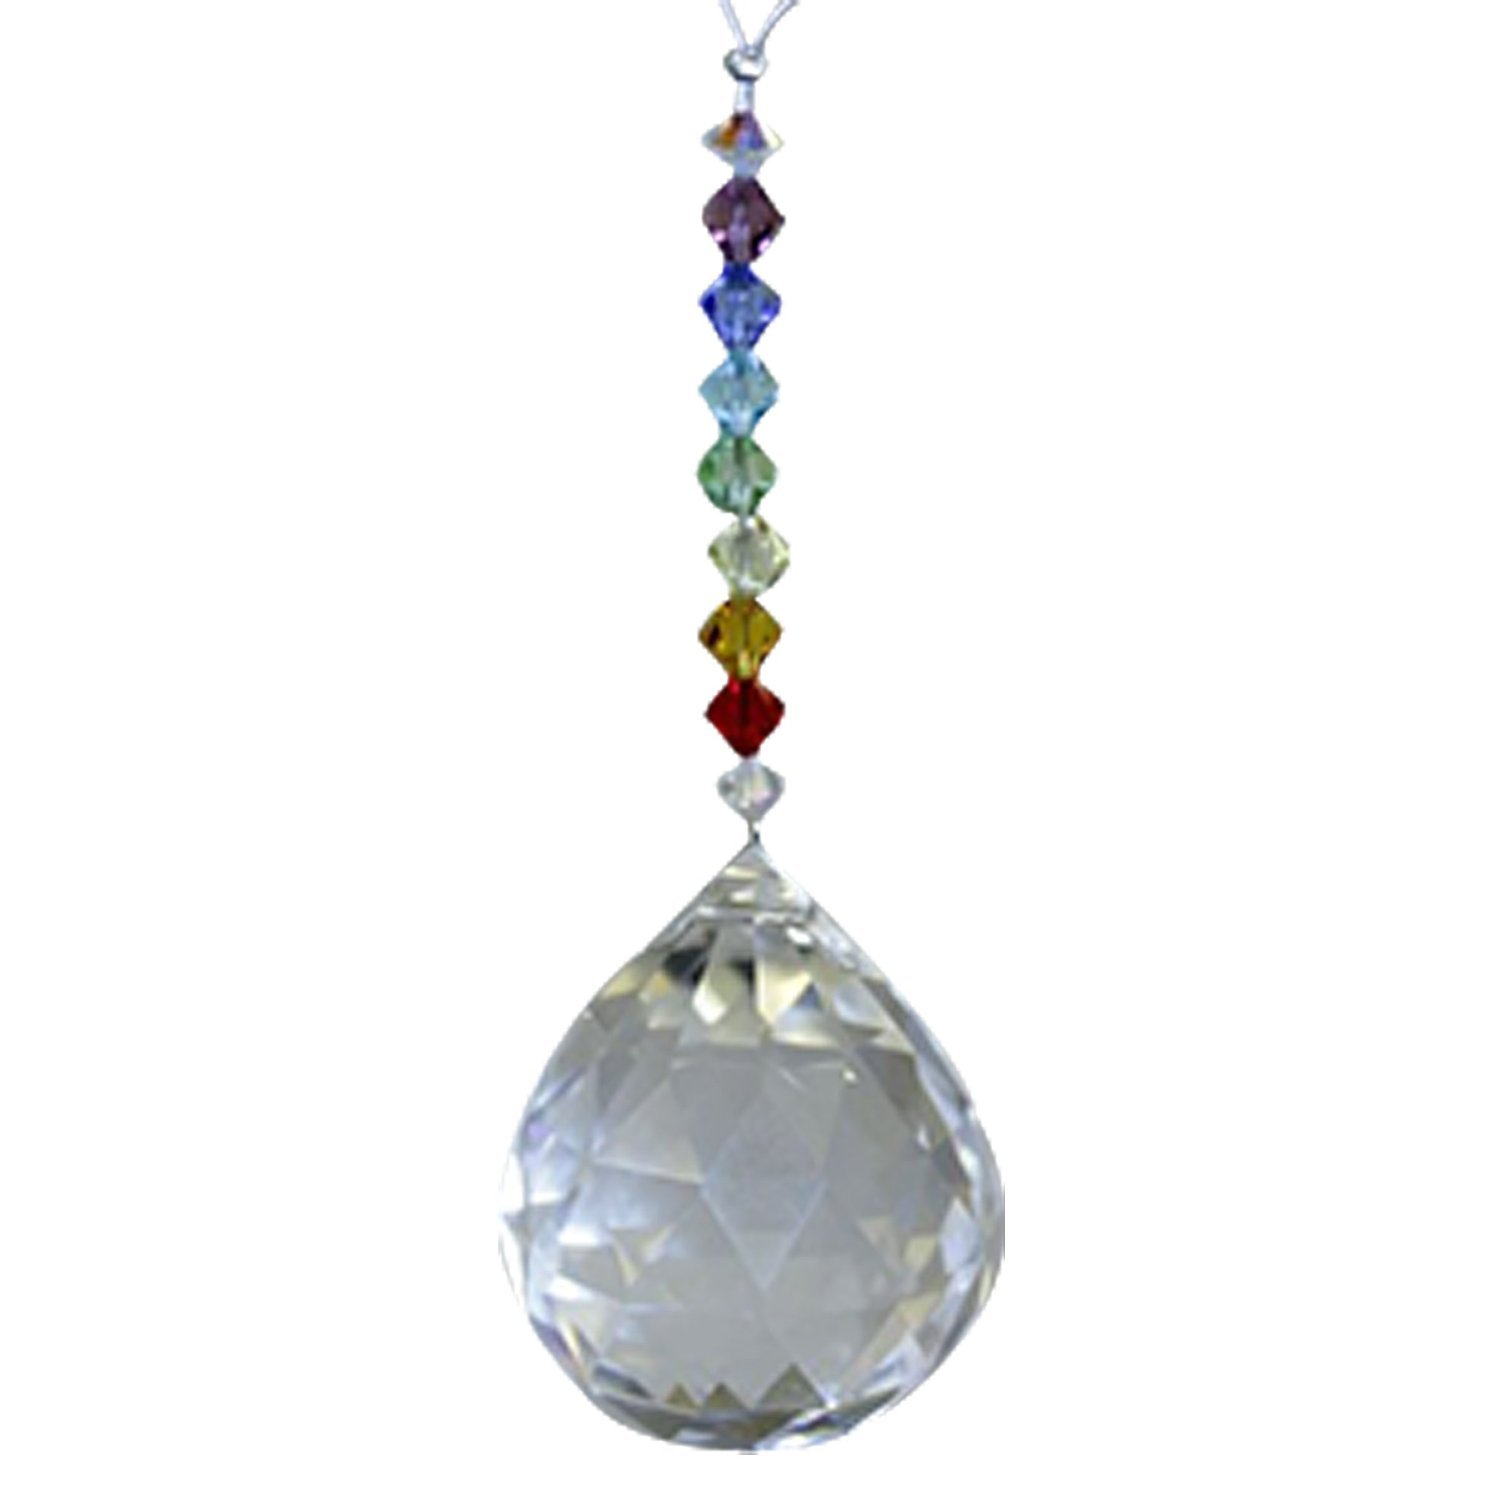 Mini Chakra Rainbow with 30 mm Clear Ball - Rainbow Maker - Crystal Suncatcher - Home, Living Room, Bedroom, Kitchen, Car Decoration - Porch Decor - Sun Catcher - Hangings Crystal Glass Ornament